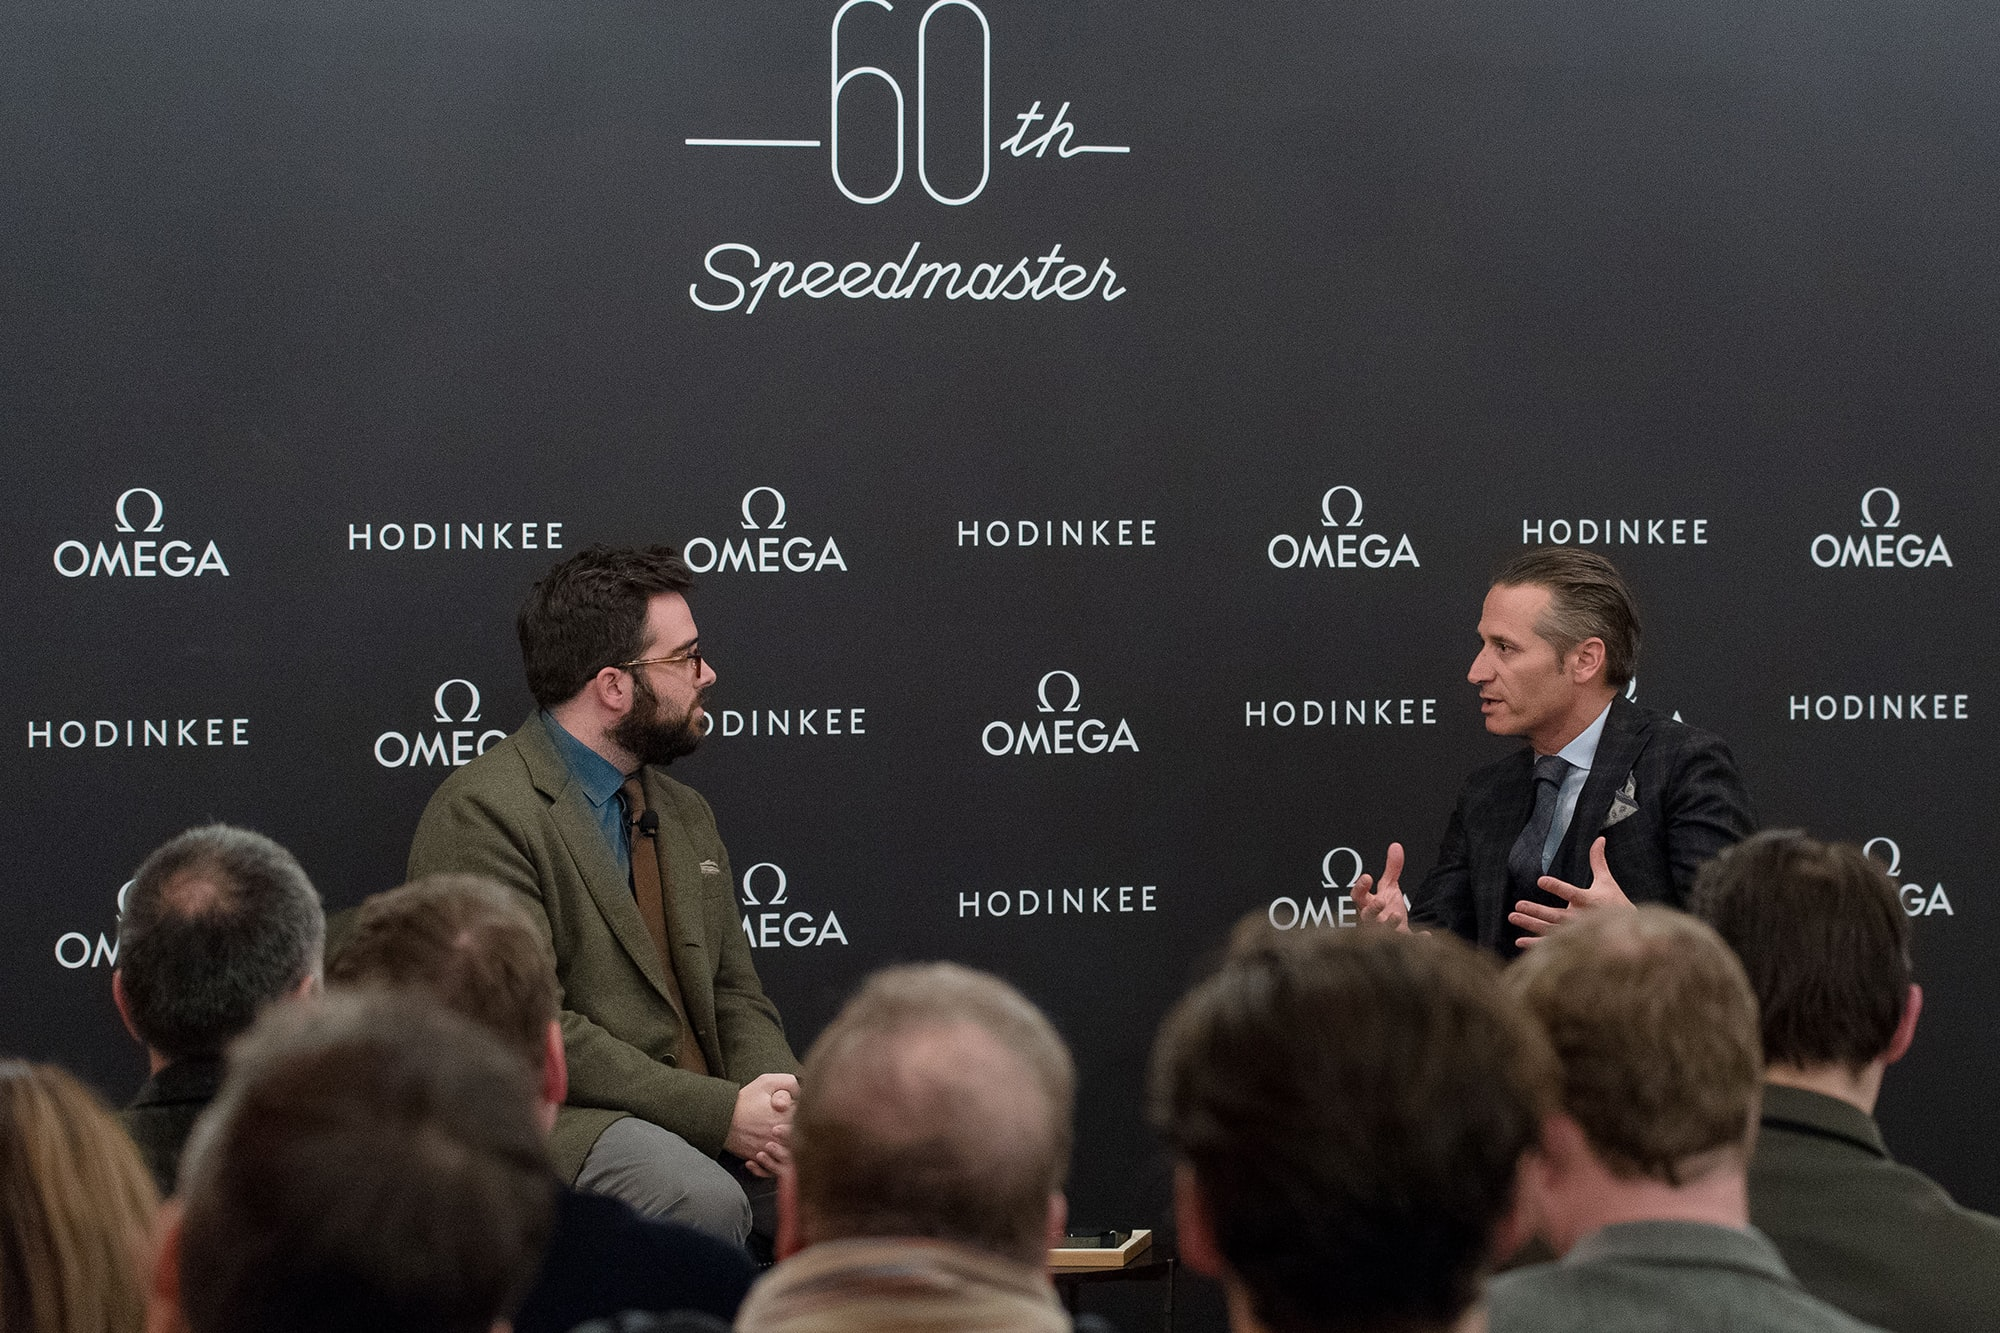 Photo Report: HODINKEE And Omega Celebrate The 60th Anniversary Of The Speedmaster Photo Report: HODINKEE And Omega Celebrate The 60th Anniversary Of The Speedmaster  20170221 OmegaSpeedmaster60th 088